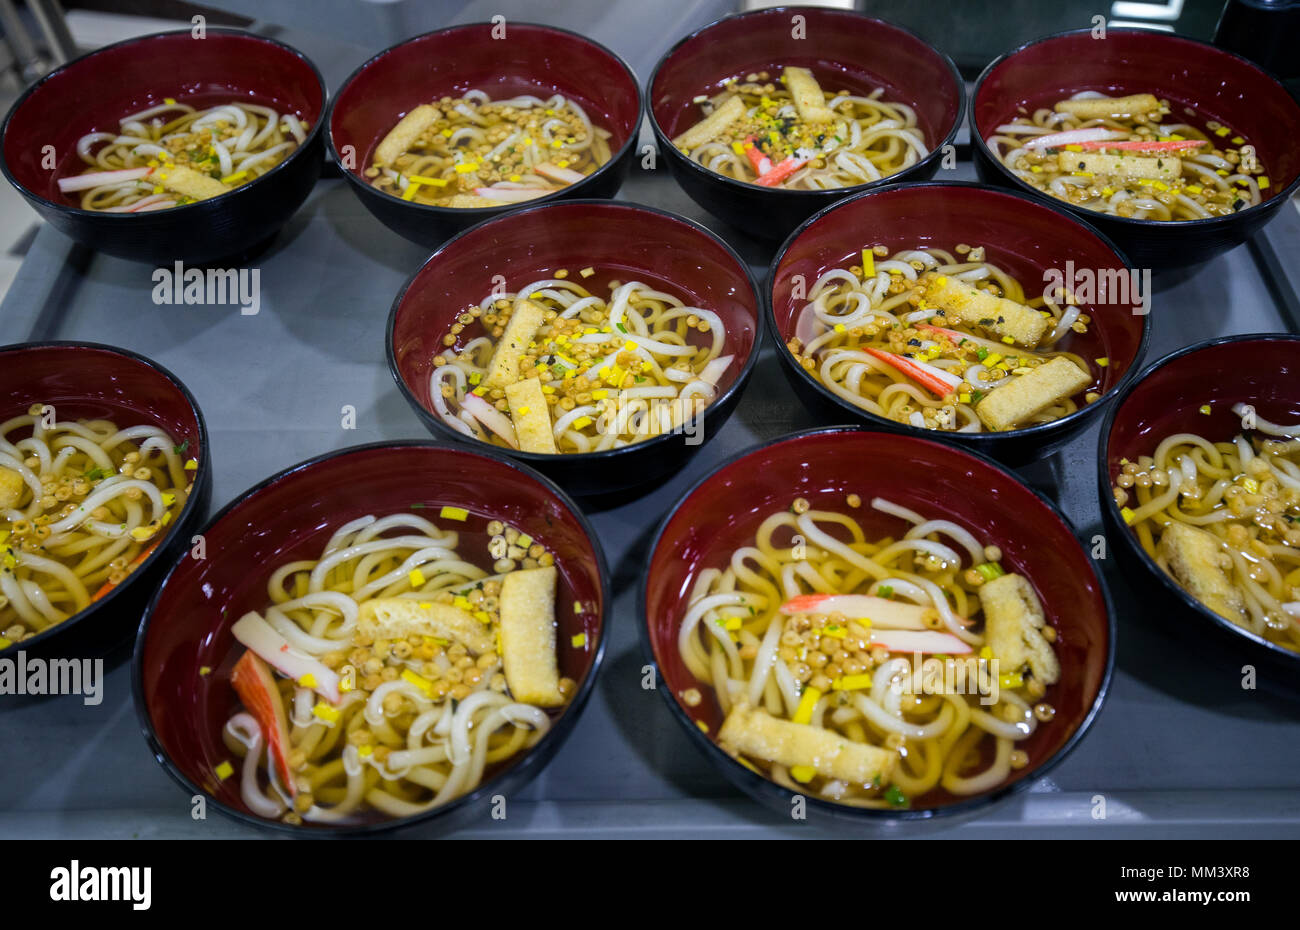 Udon bowls on the table, prepare for serves - Stock Image